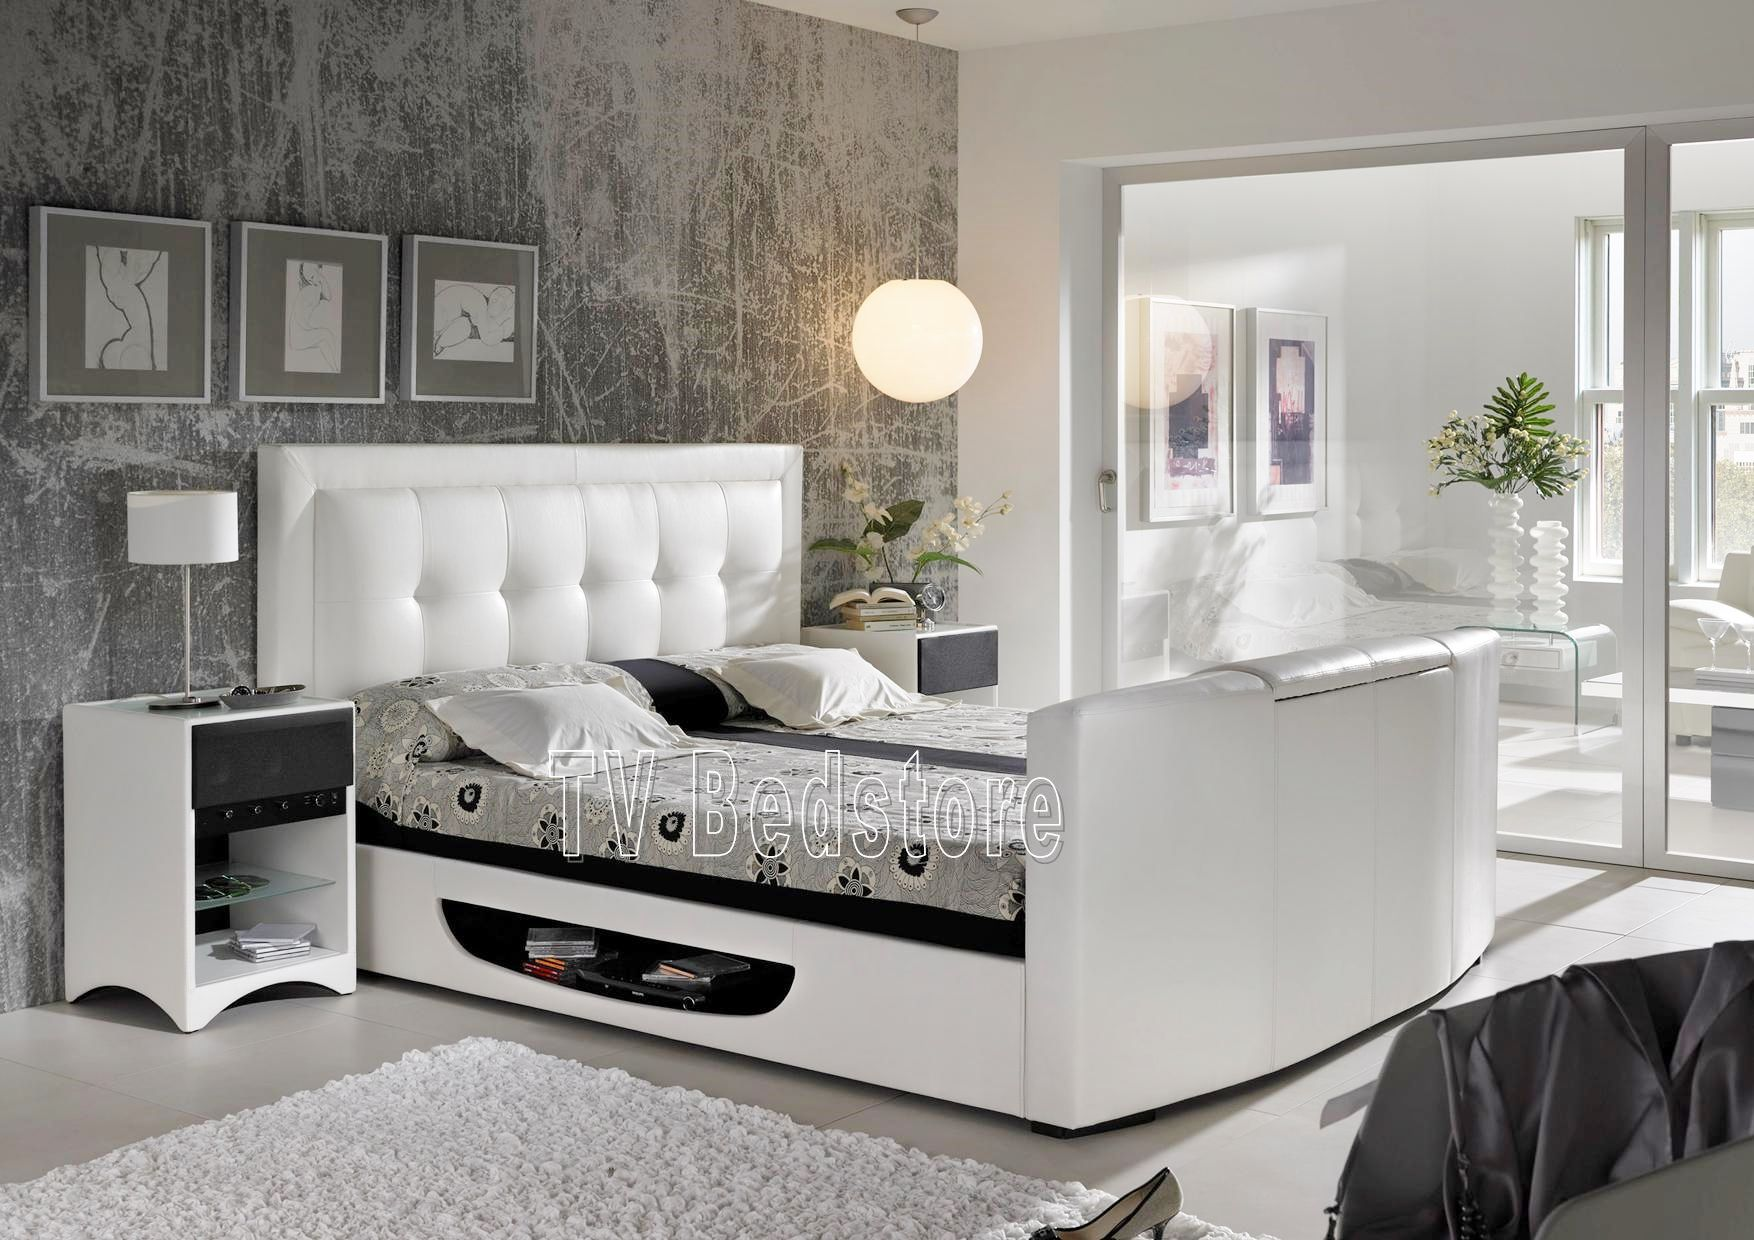 The Bowburn Super King Size TV Bed Is The Ultimate In Bedroom Style And  Luxury,